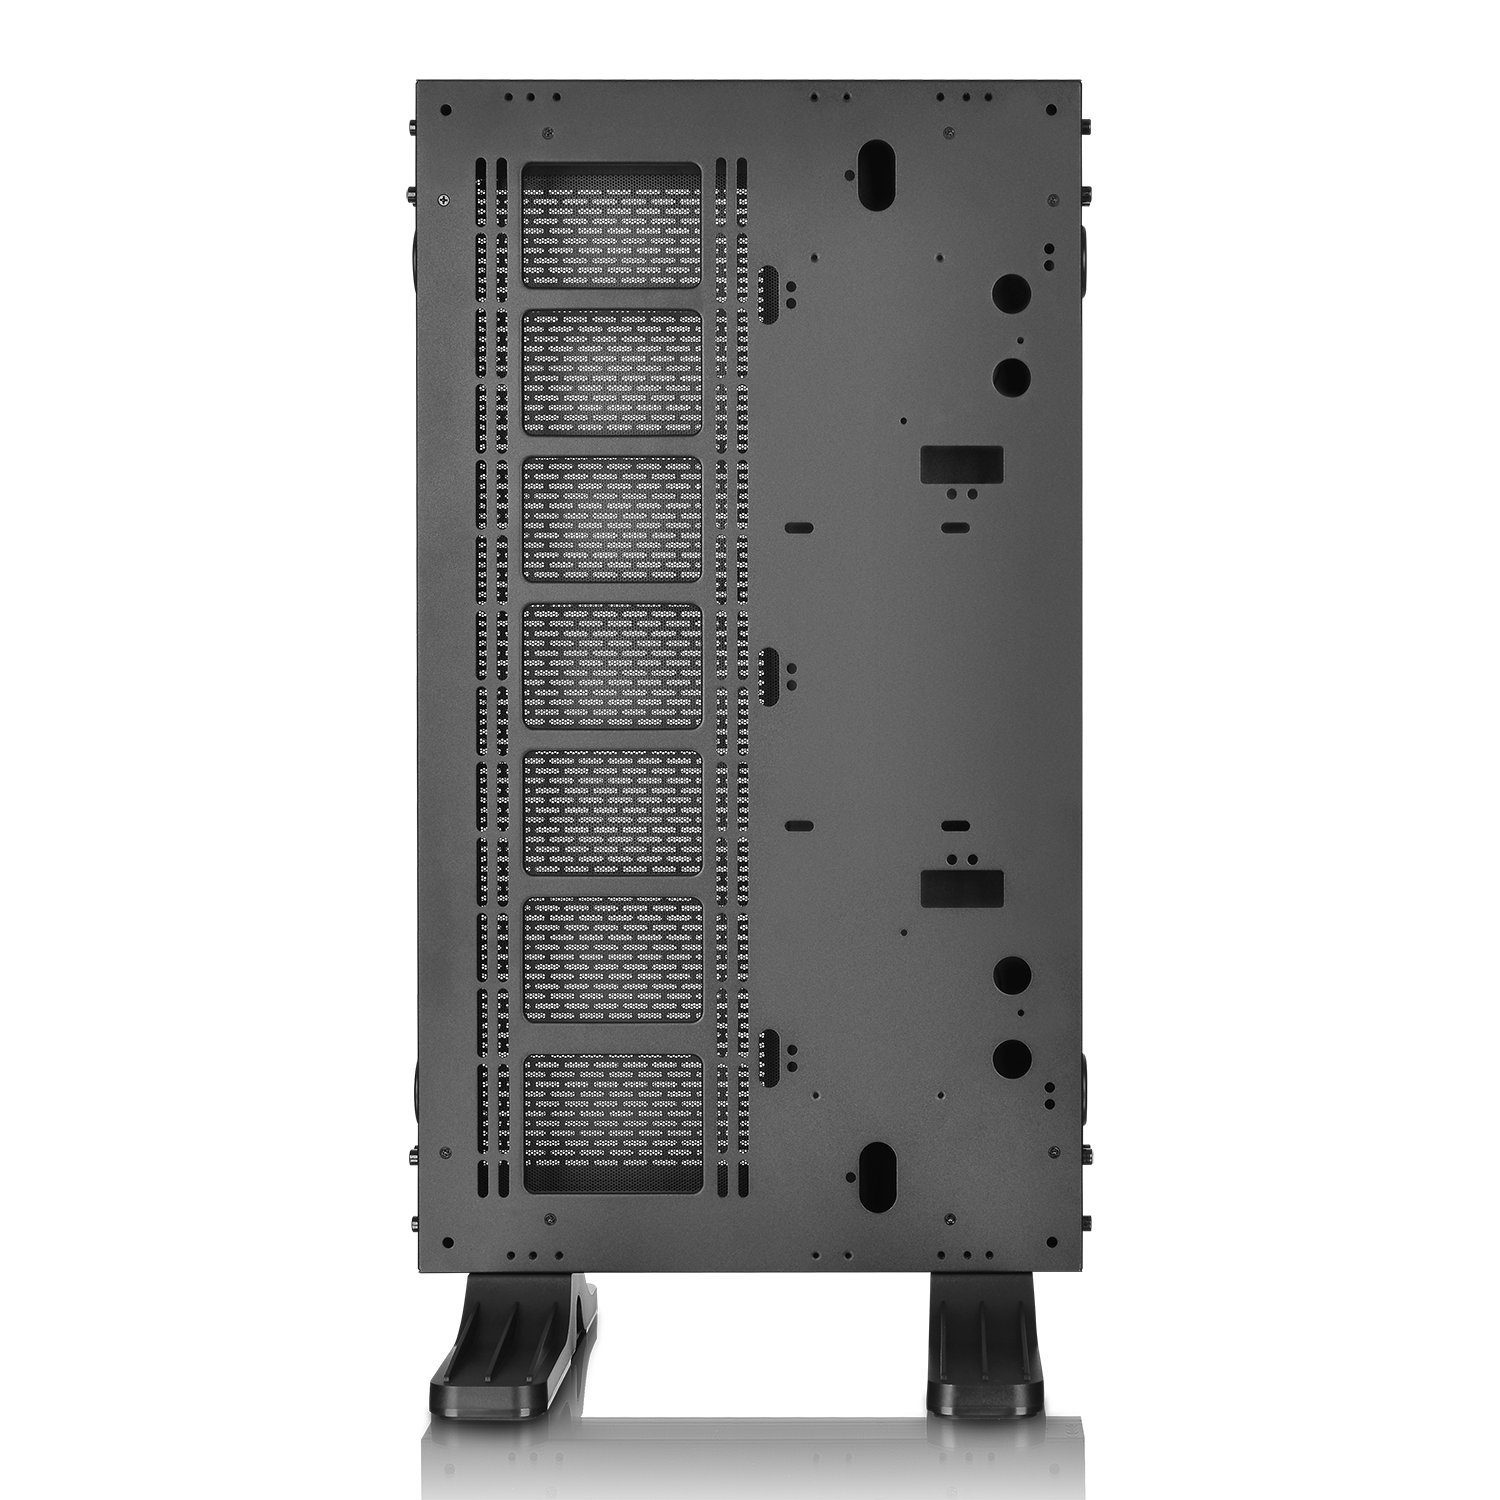 Thermaltake Core P7 Tempered Glass Edition E-ATX Open Frame Panoramic Viewing Tt LCS Certified Gaming Computer Chassis CA-1I2-00F1WN-00 by Thermaltake (Image #4)